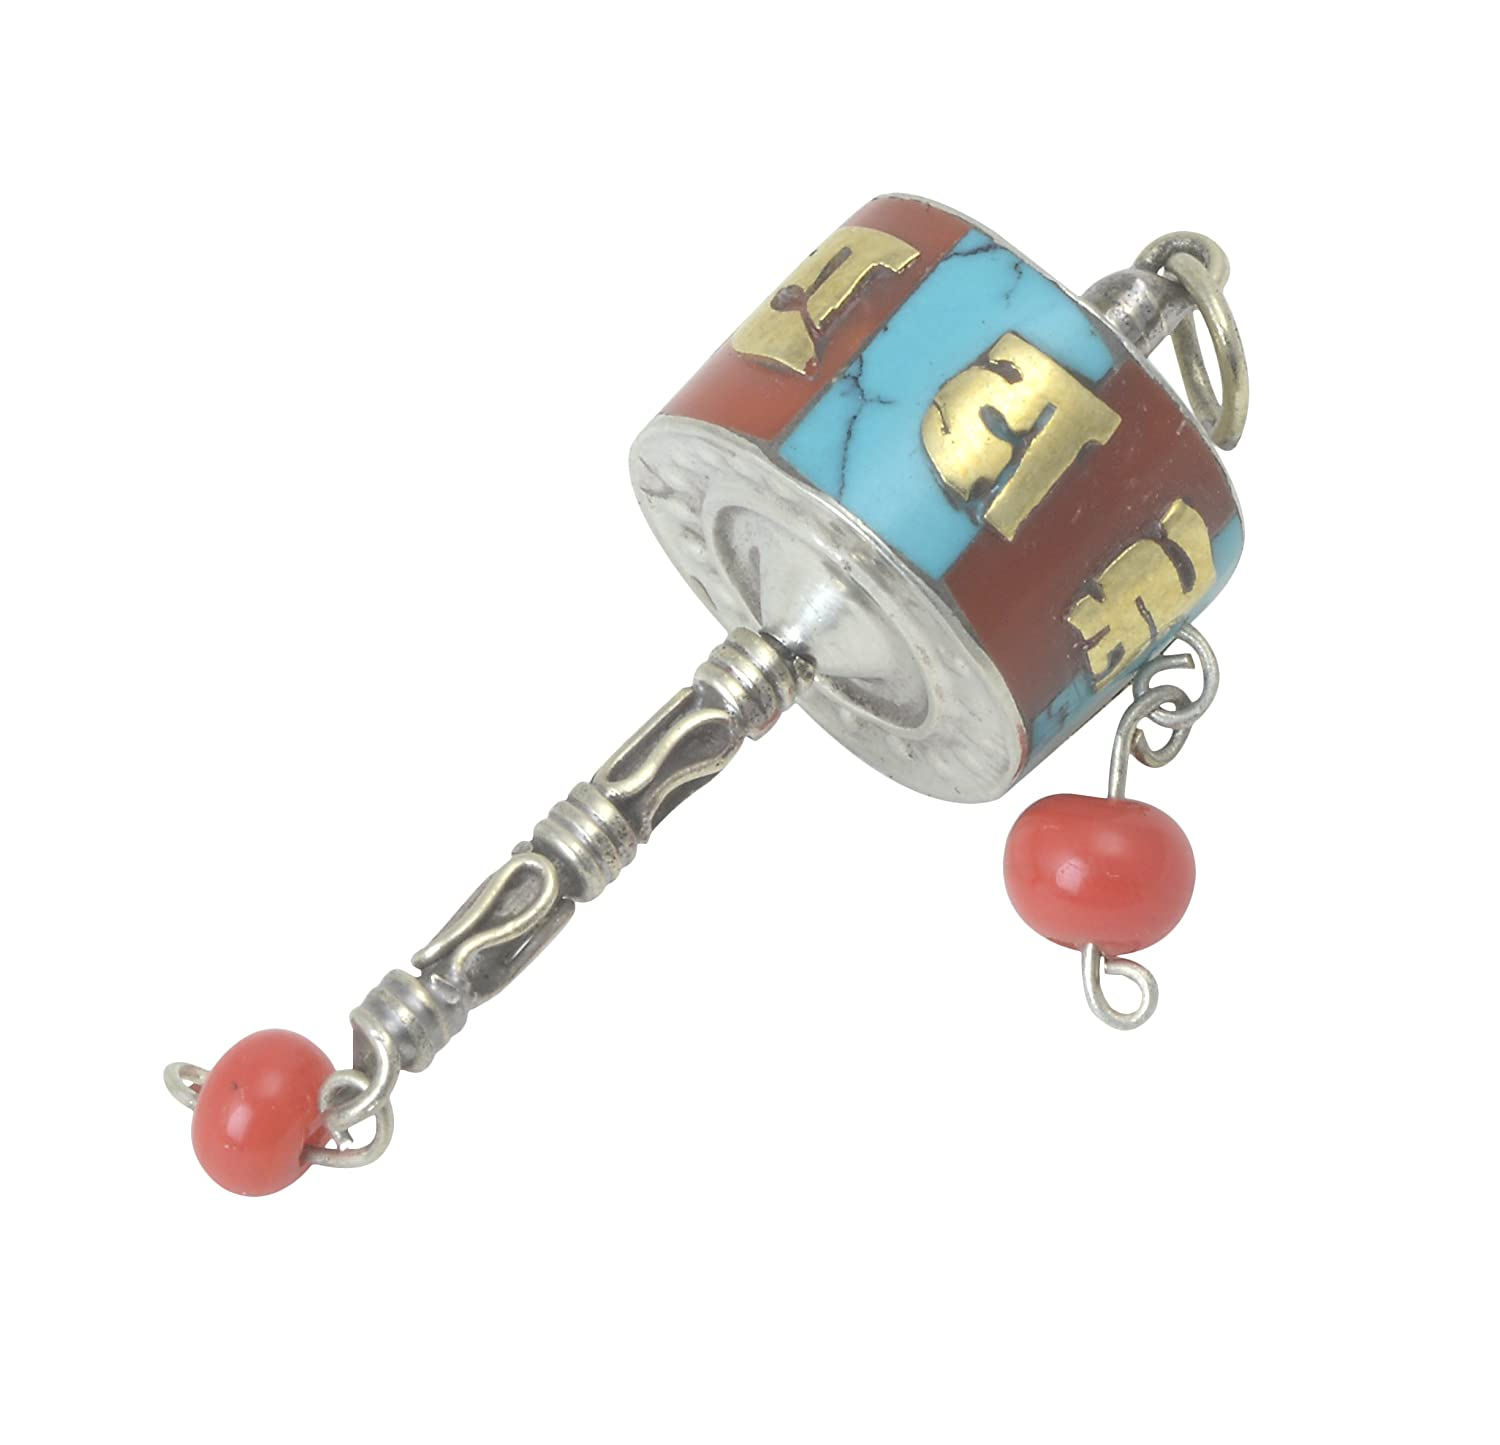 Amazon.com: Collectible Om Mani Padme Hum Tibetan Carving Prayer wheel Pendant handicrafts product by Bharat HaatBH06525: Kitchen & Dining